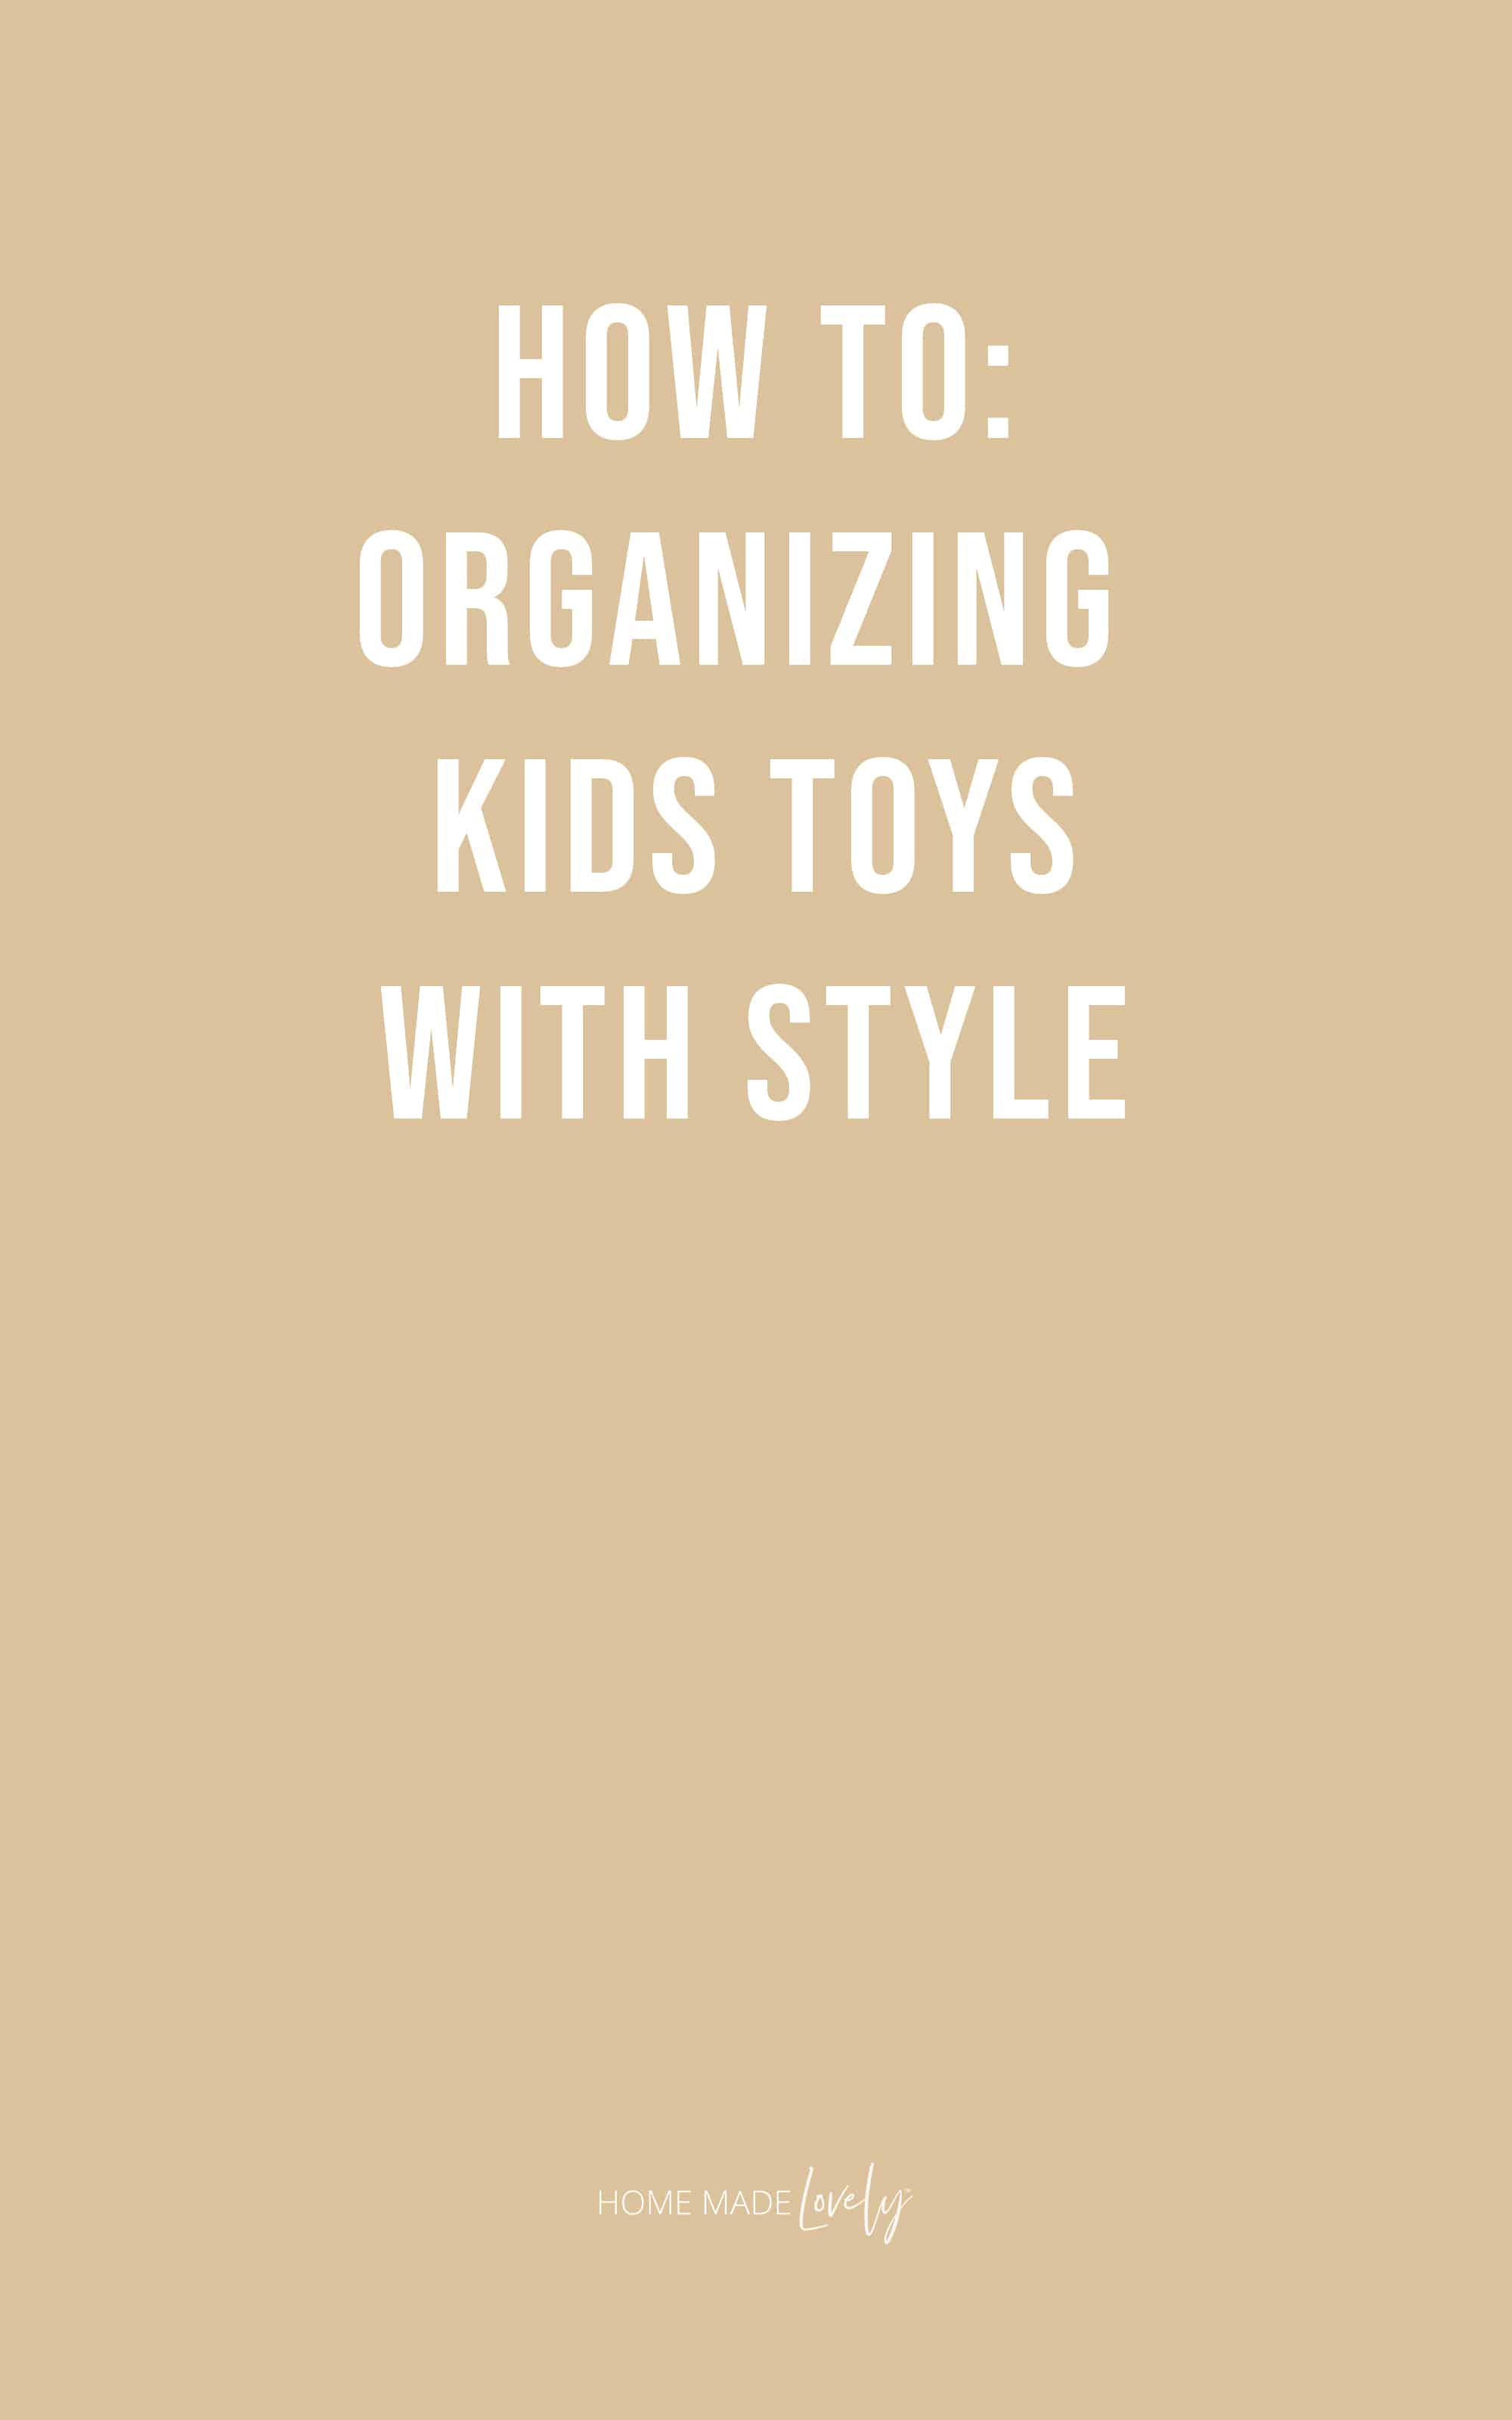 how to: organizing kids toys with style text on pale straw yellow background